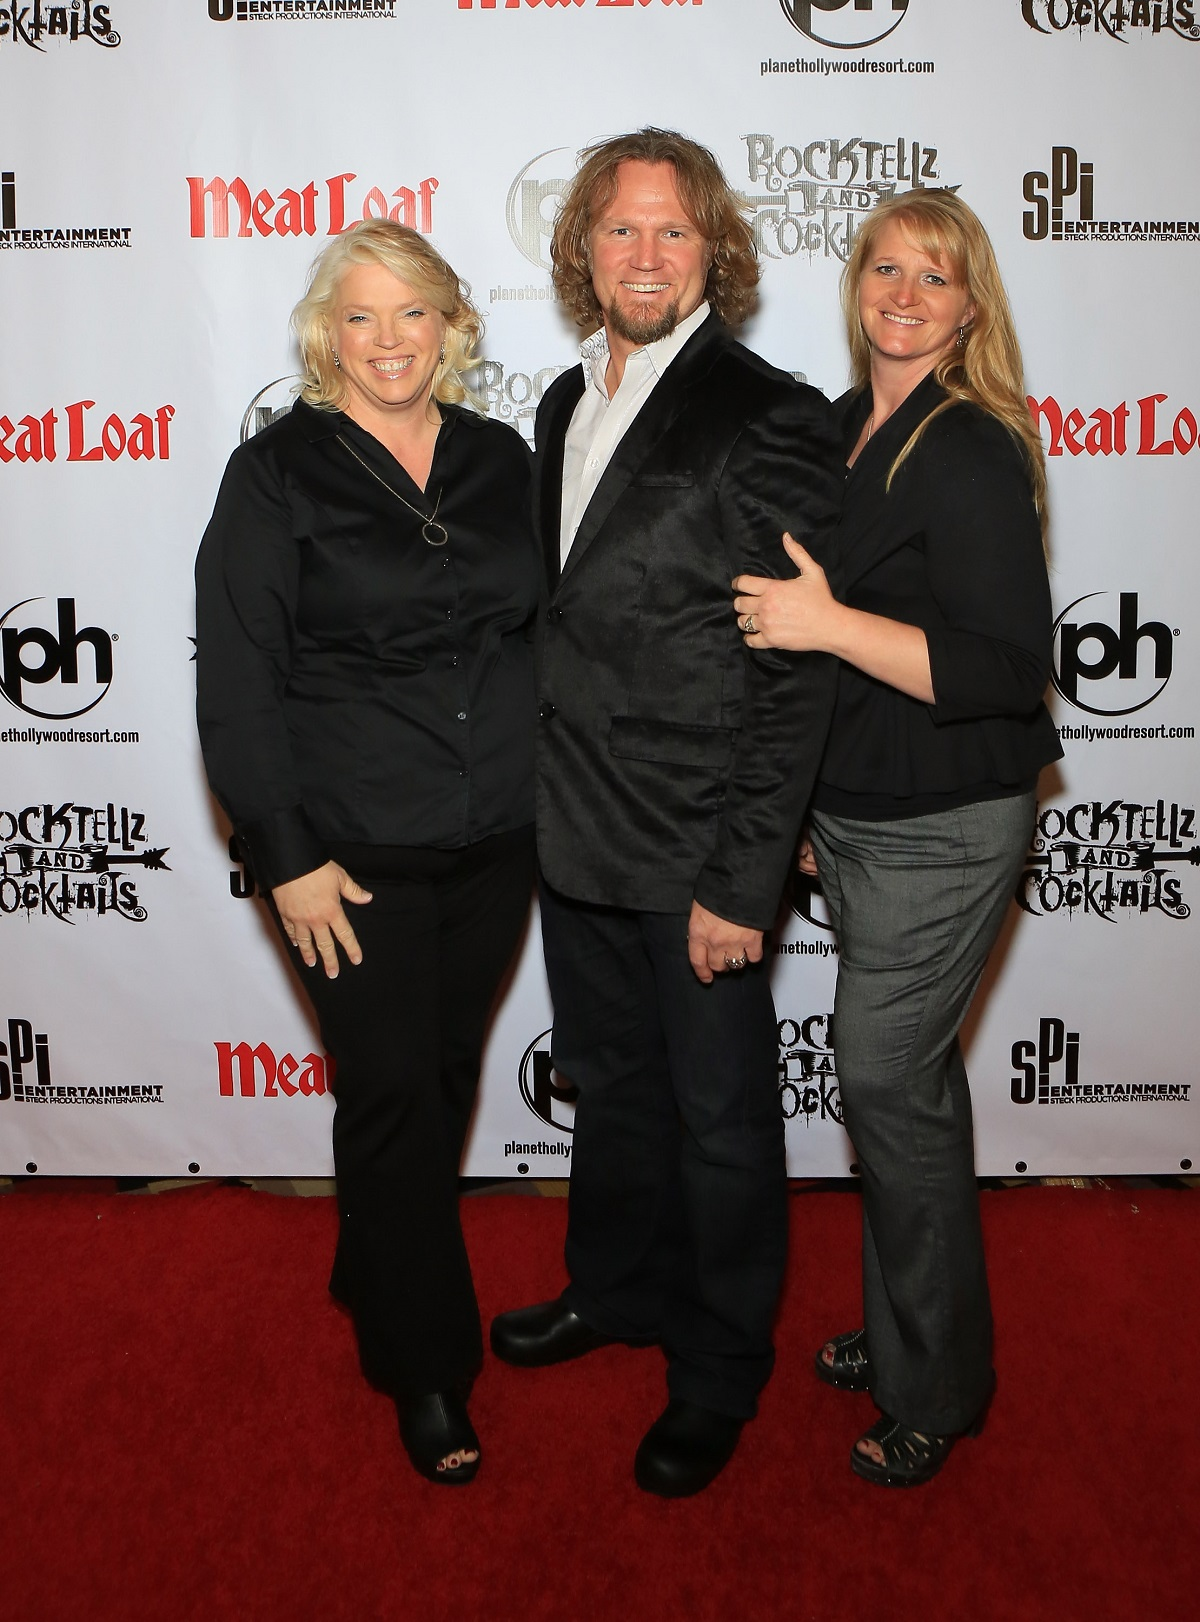 "Janelle Brown, Kody Brown and Christine Brown from ""Sister Wives"" arrive at the show ""RockTellz & CockTails presents Meat Loaf"" at Planet Hollywood Resort & Casino on October 3, 2013 in Las Vegas, Nevada."